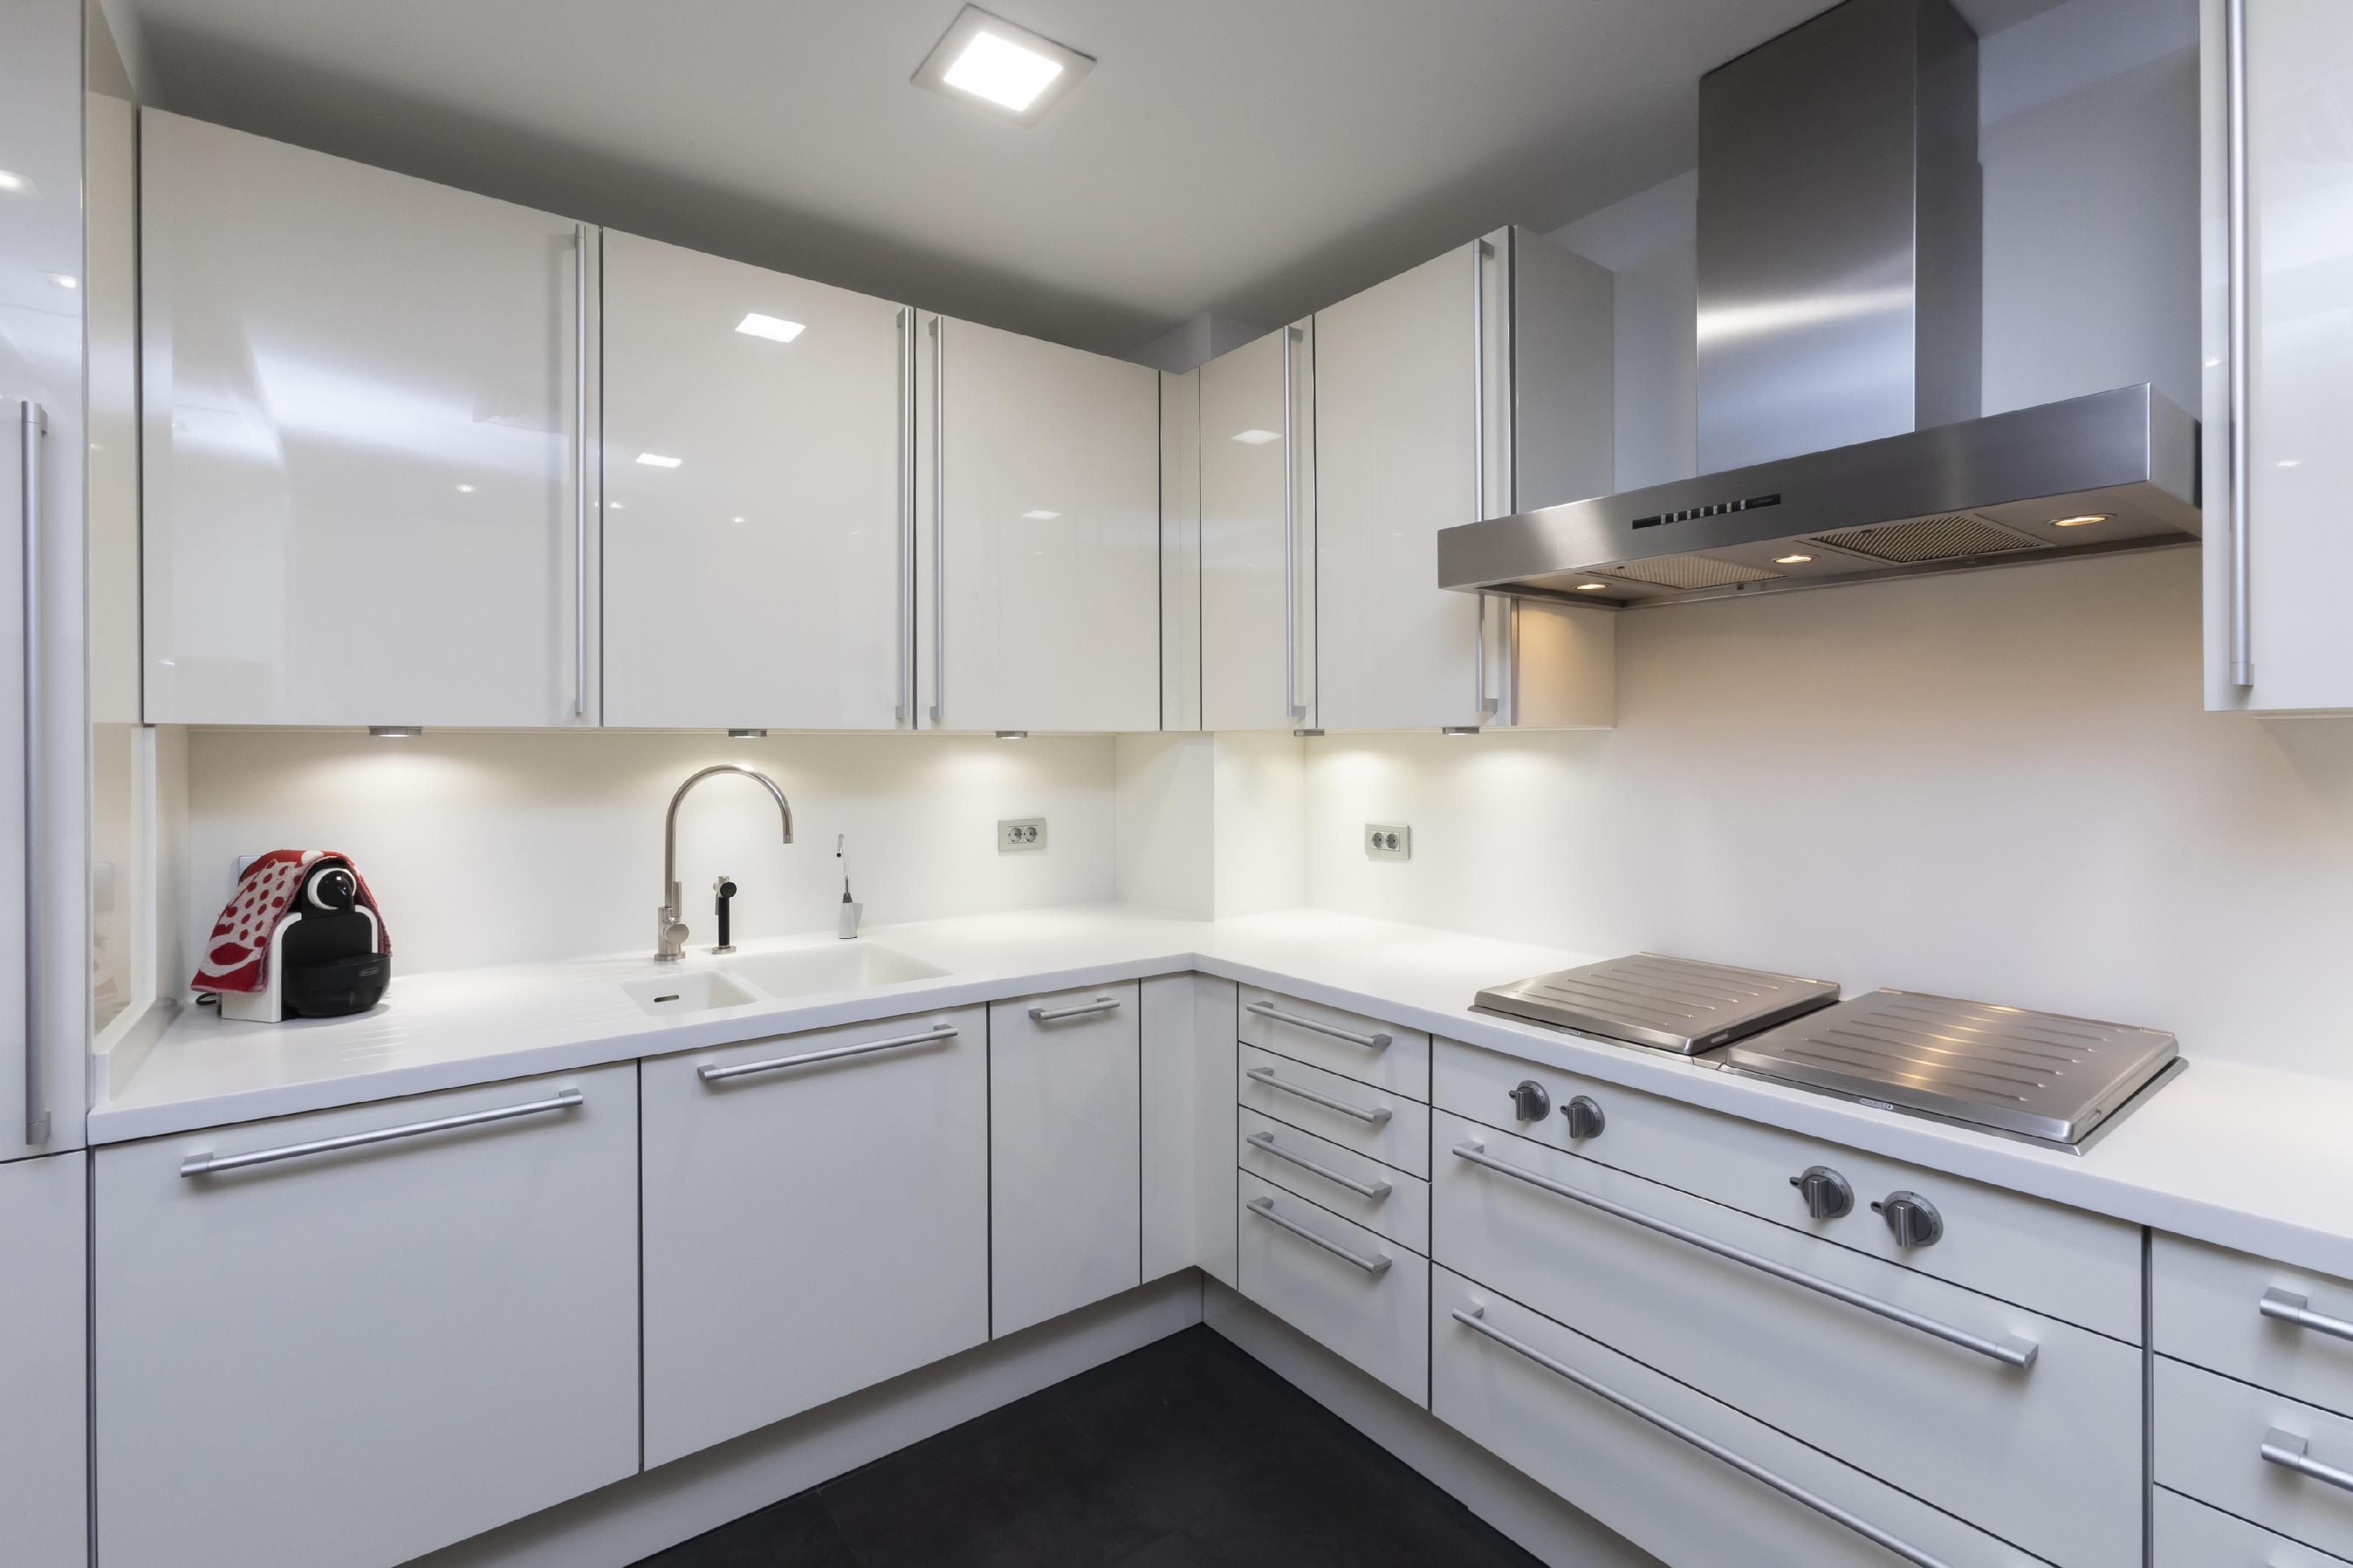 247020 Flat for sale in Les Corts, Les Corts 11